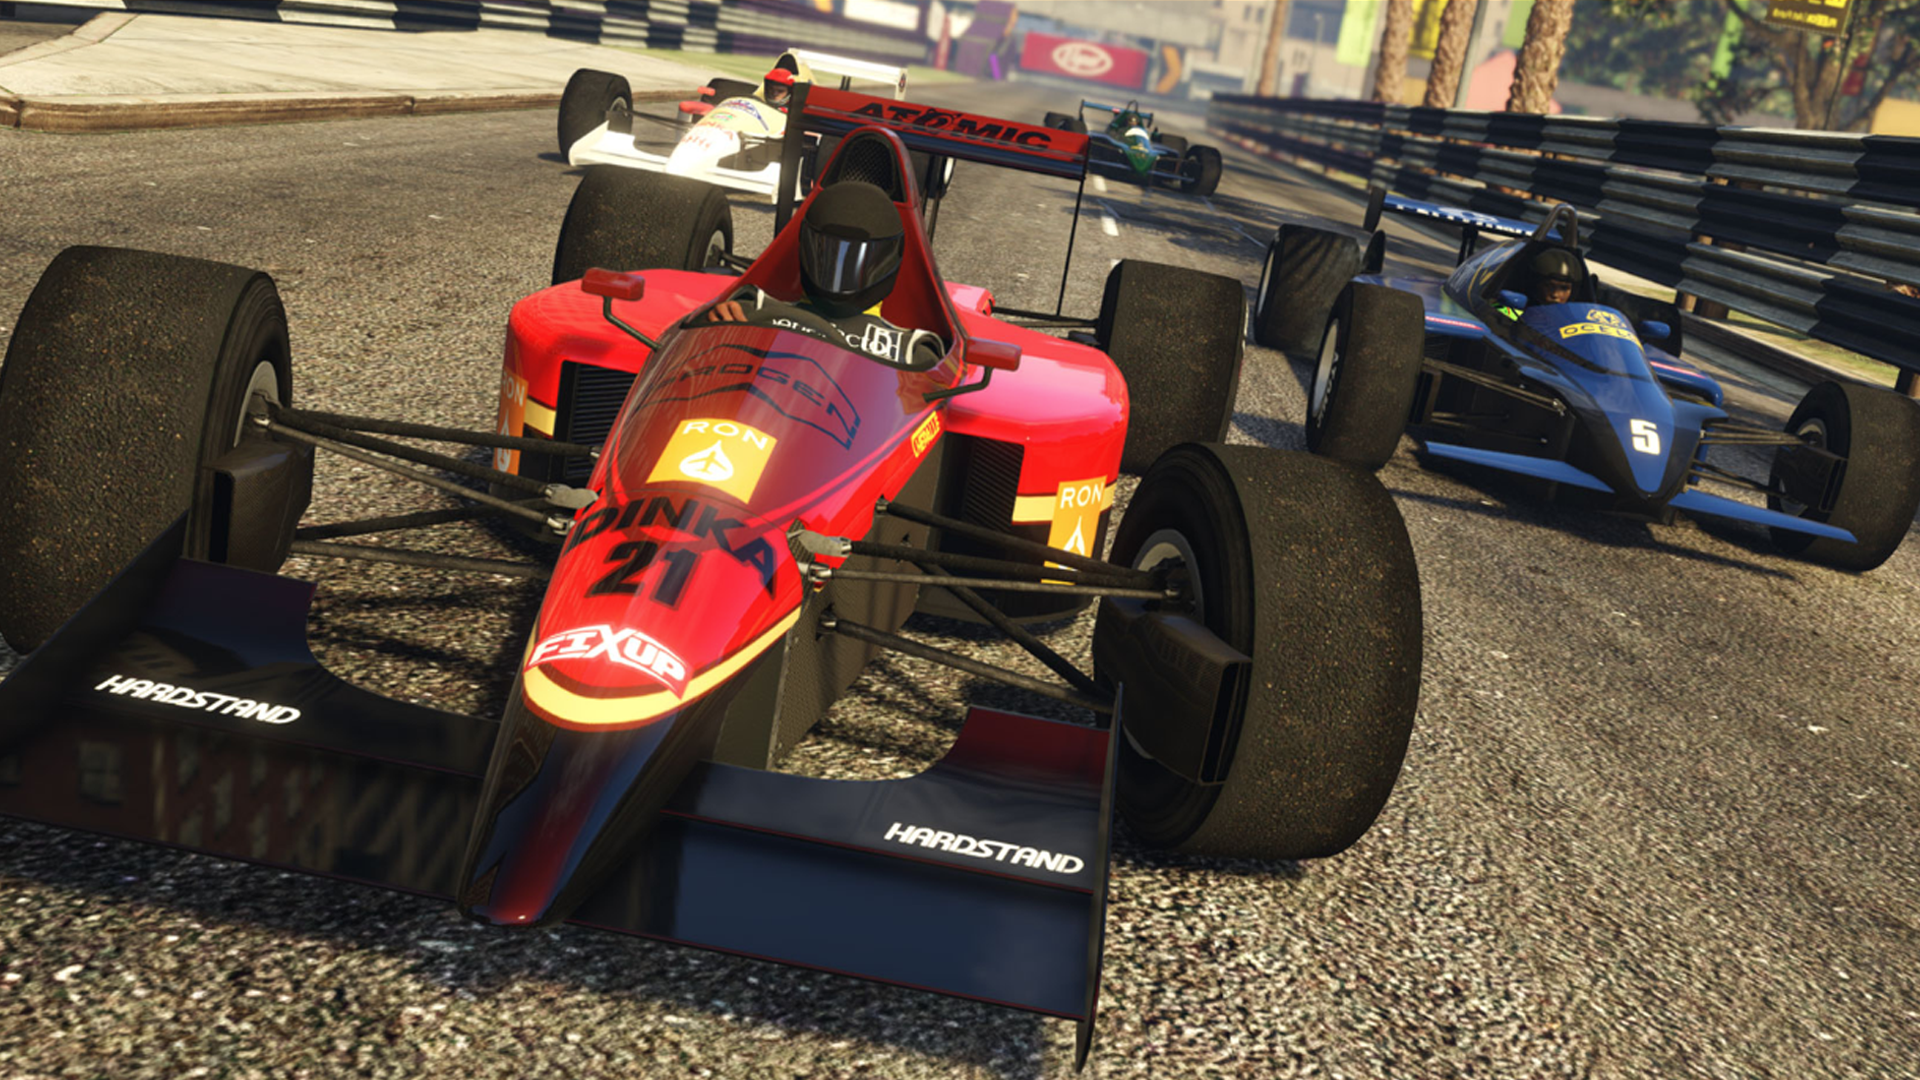 GTA Online's New Formula 1 Races Are Cool But Too Tough For Many Players